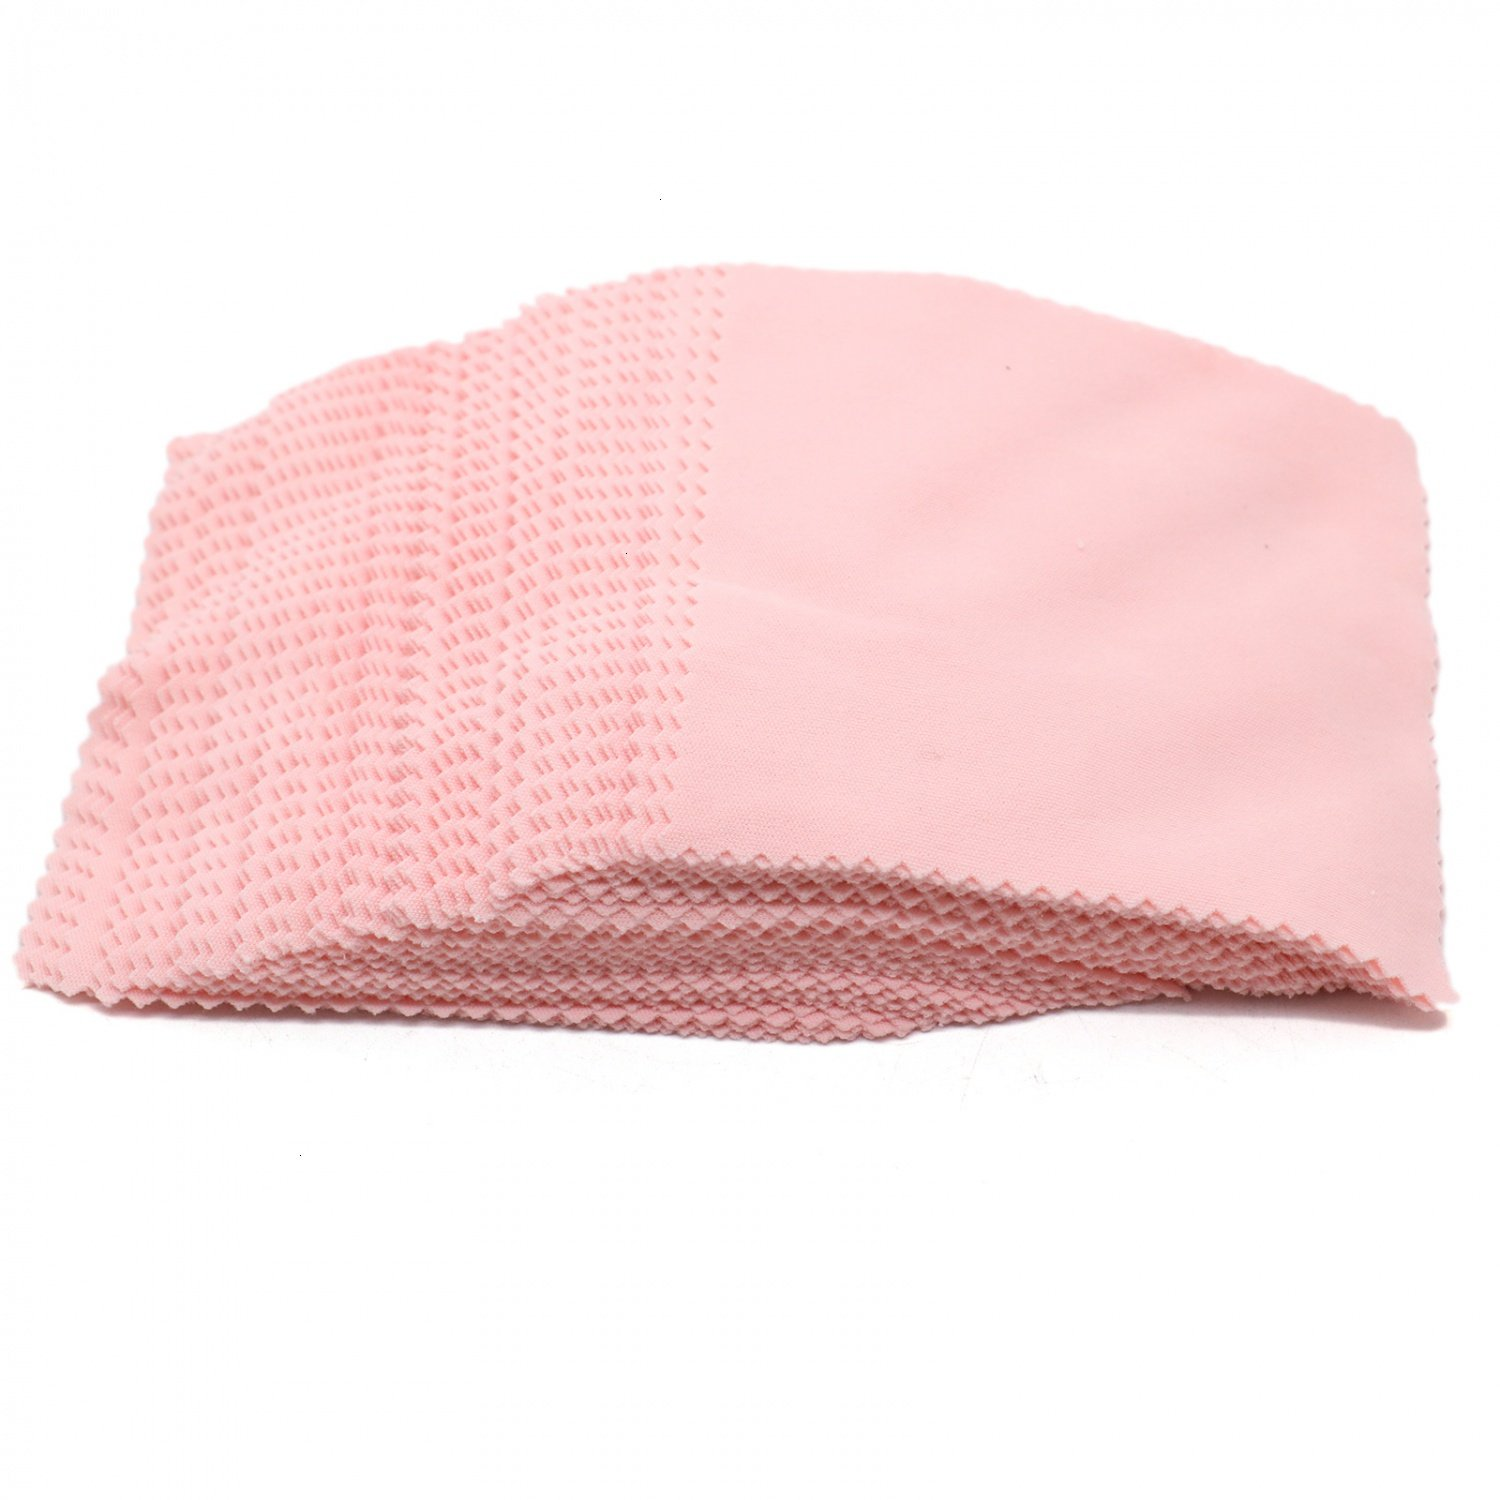 Rugjut 100 PCS Jewelry Cleaning Cloth Polishing Cloth for Silver Gold and Platinum Jewelry (Pink) 4336839410